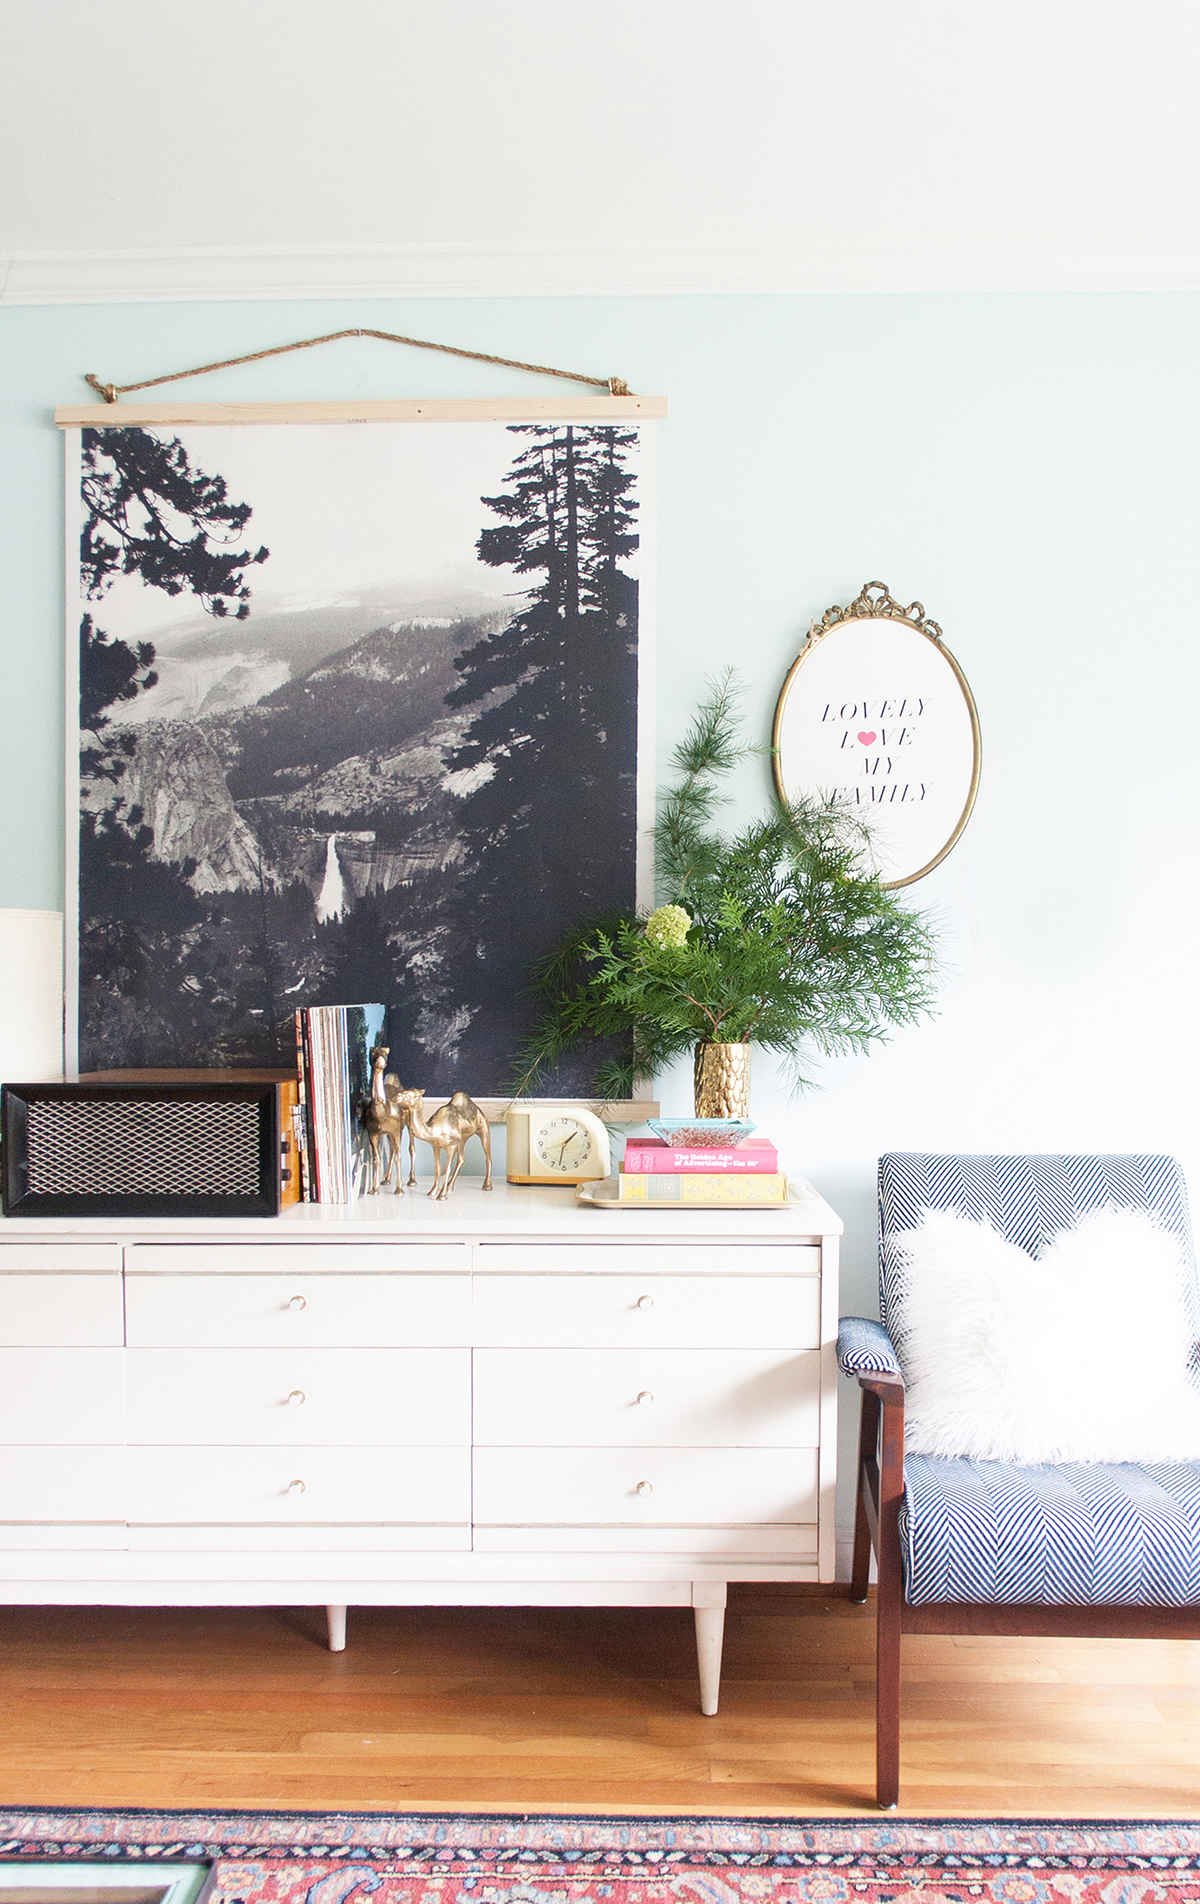 Remodelaholic | 60 Budget-Friendly DIY Large Wall Decor Ideas